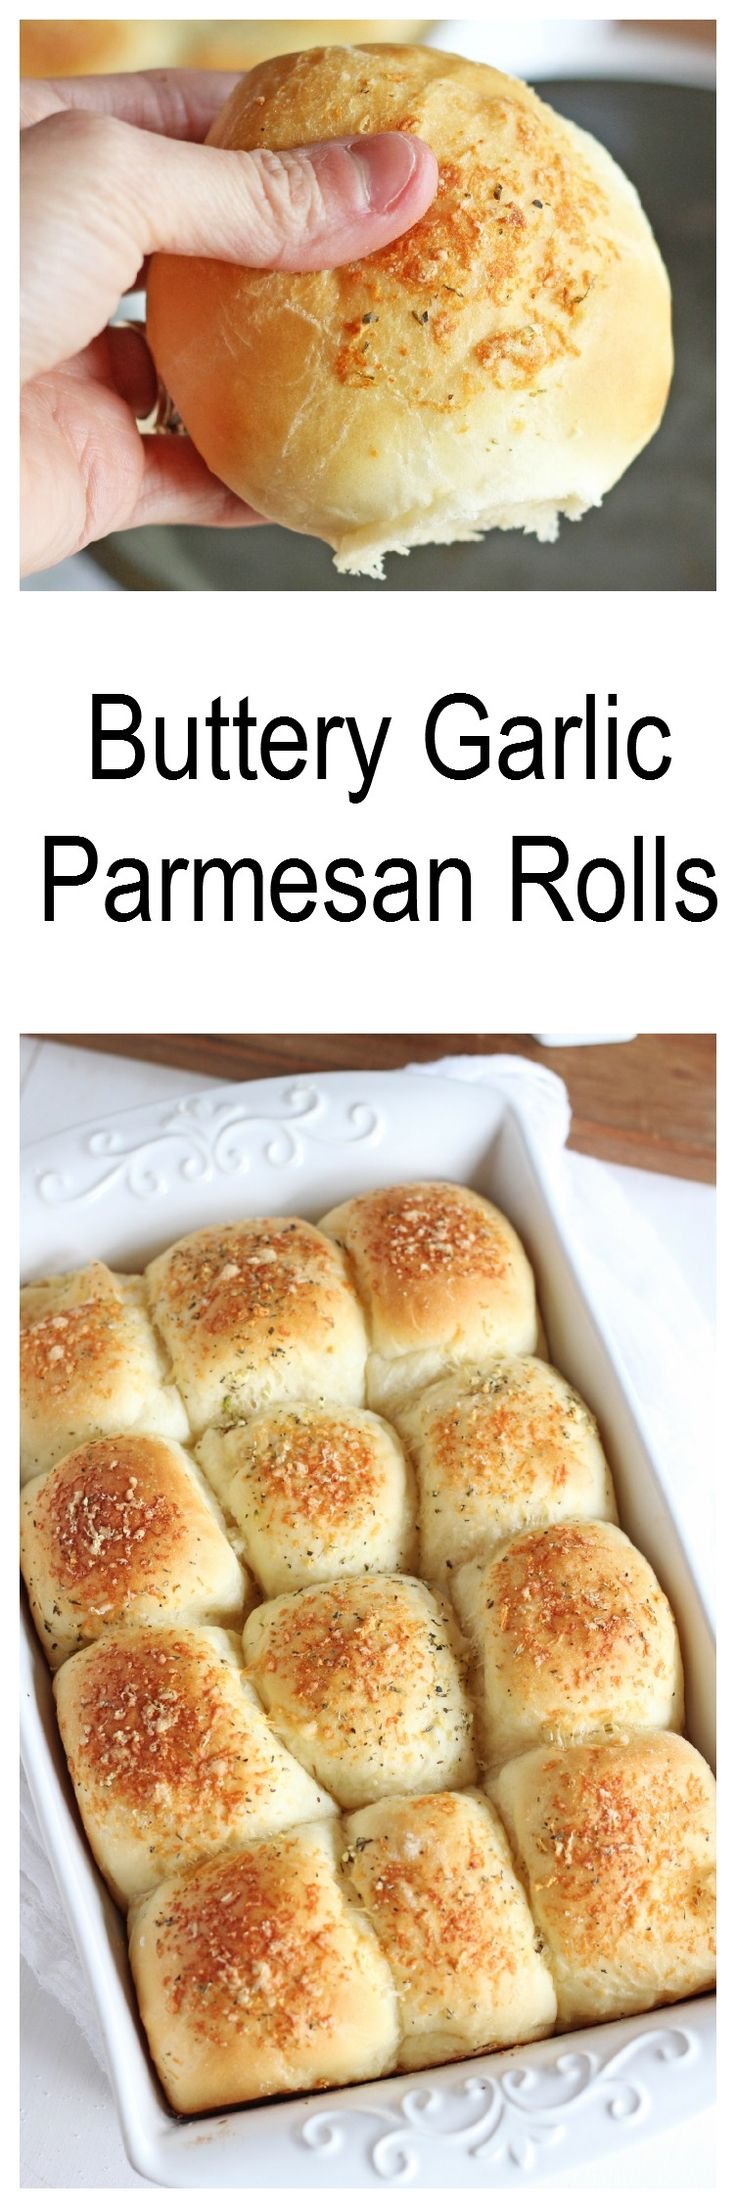 Buttery Parmesan Garlic Rolls -- Simple fluffy rolls topped with butter and Parmsesan and a hint of garlic. | carmelmoments.com